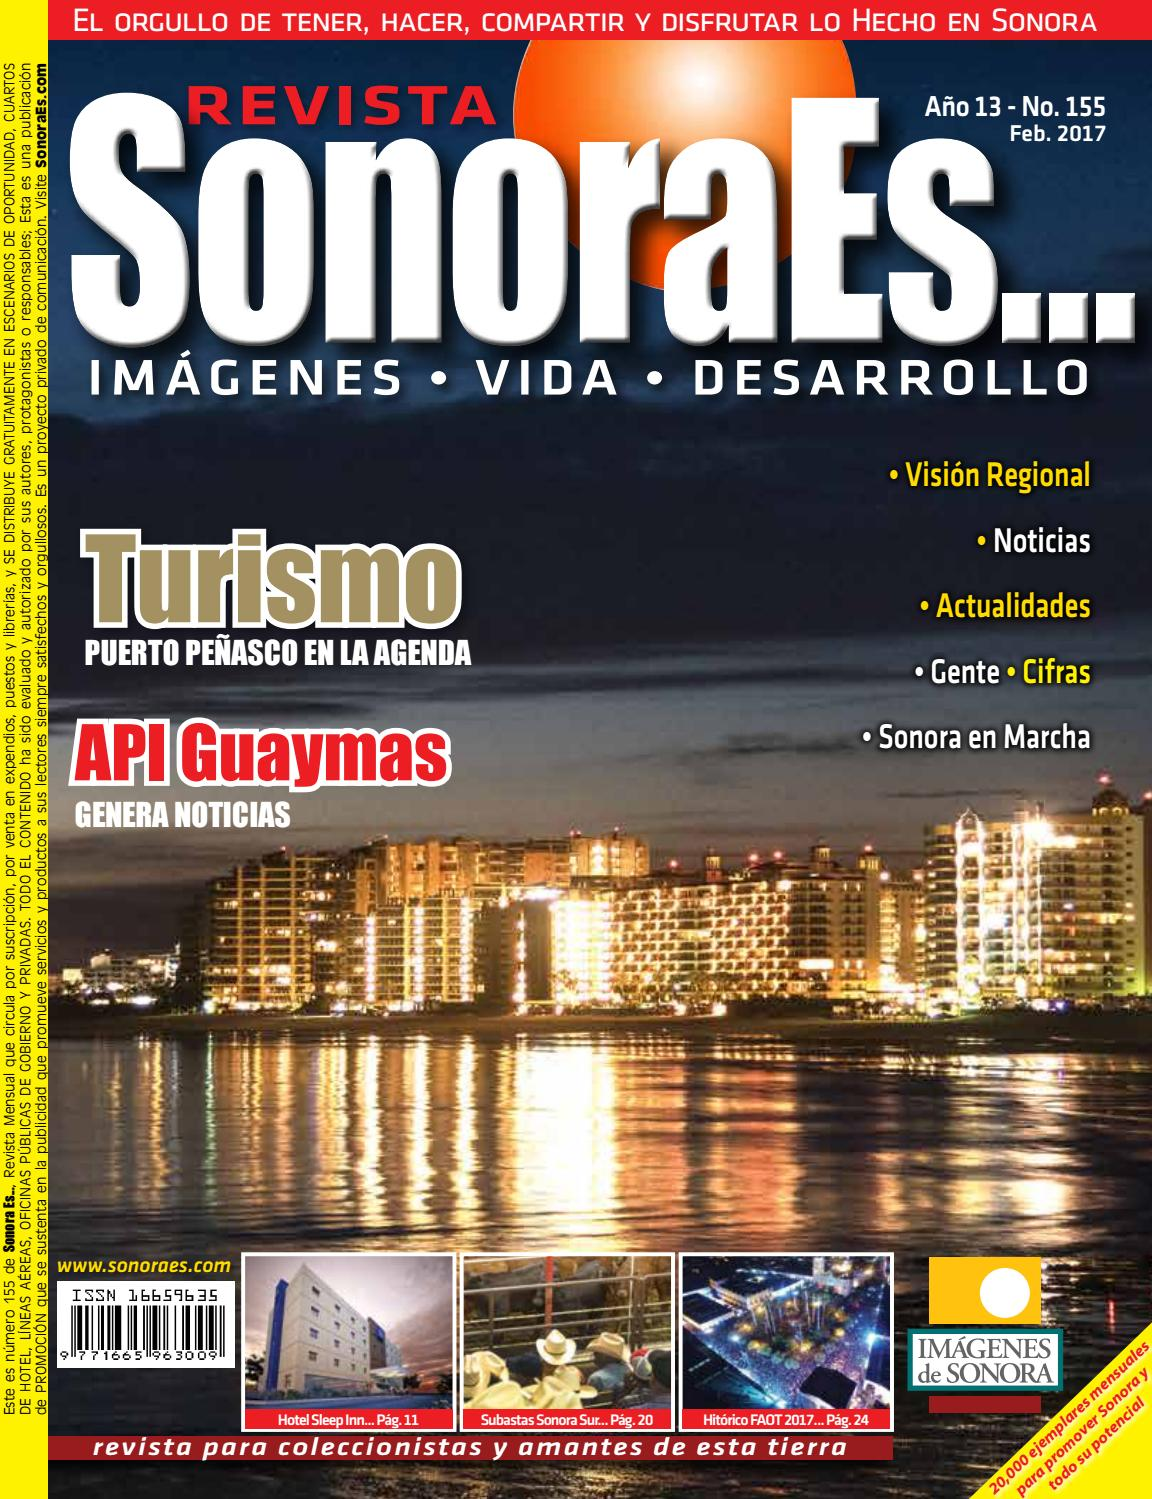 Revista Sonoraes    Se155 Feb  2017 By Imagenes De Sonora